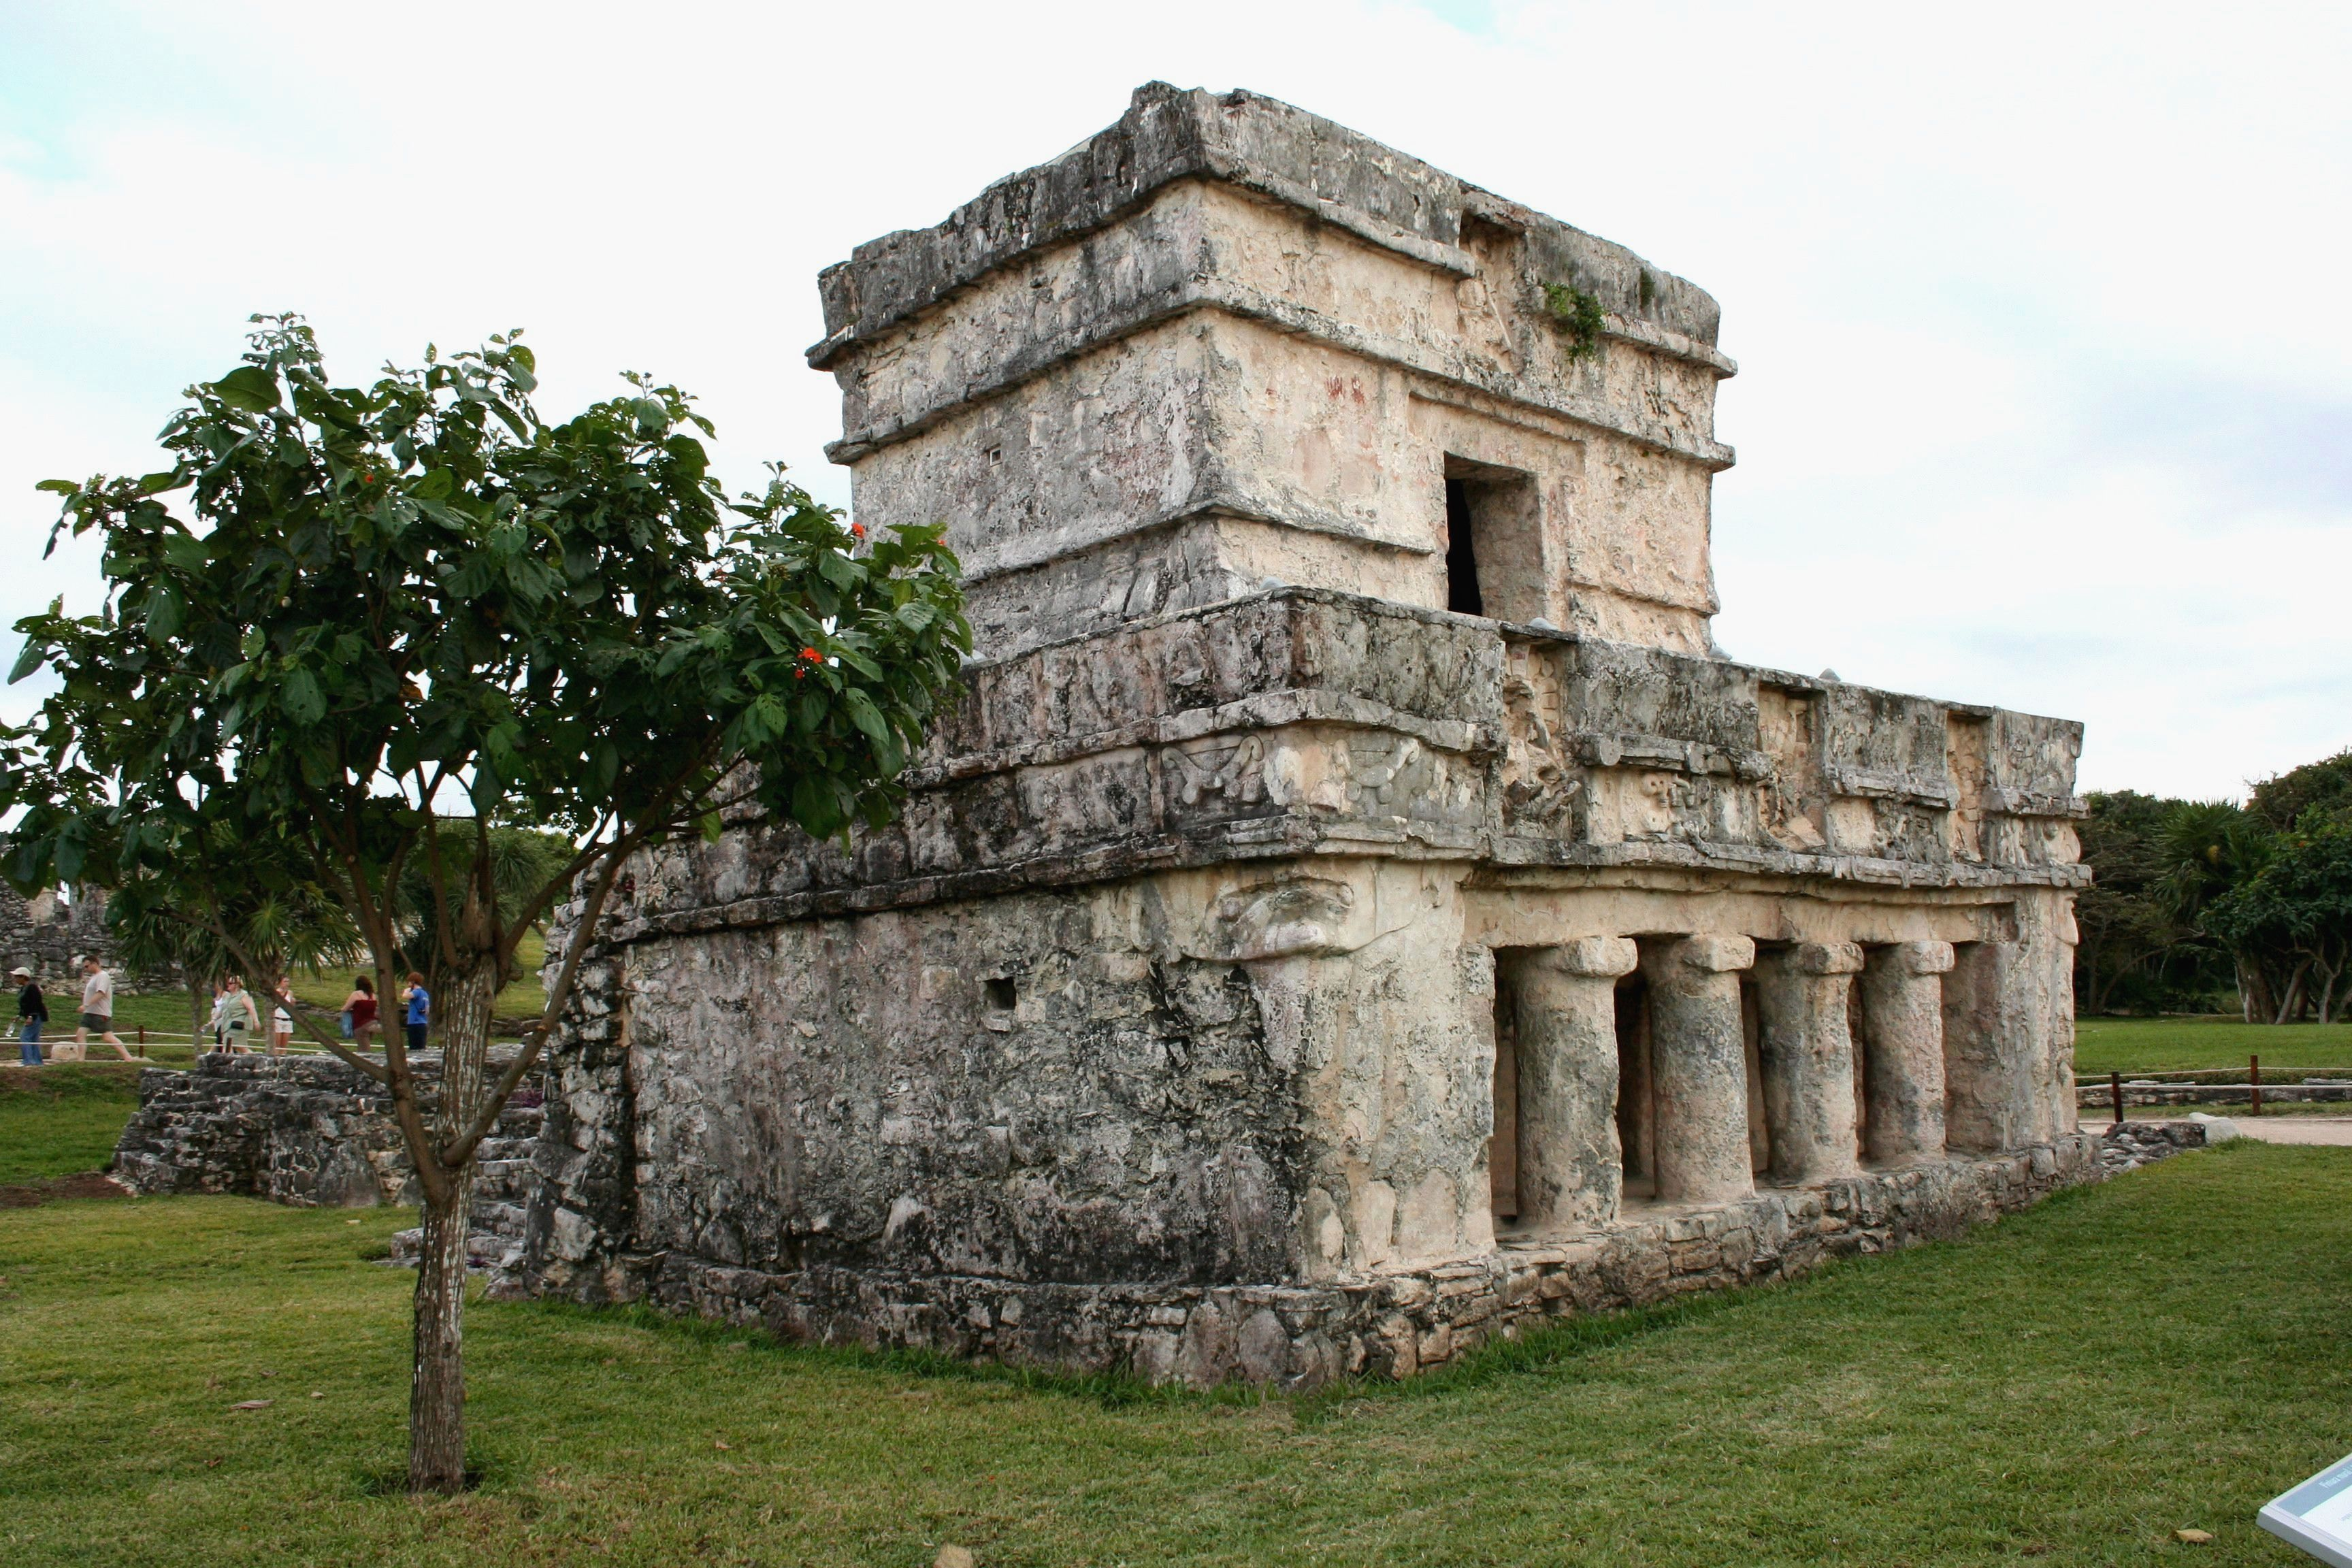 Building at Tulum